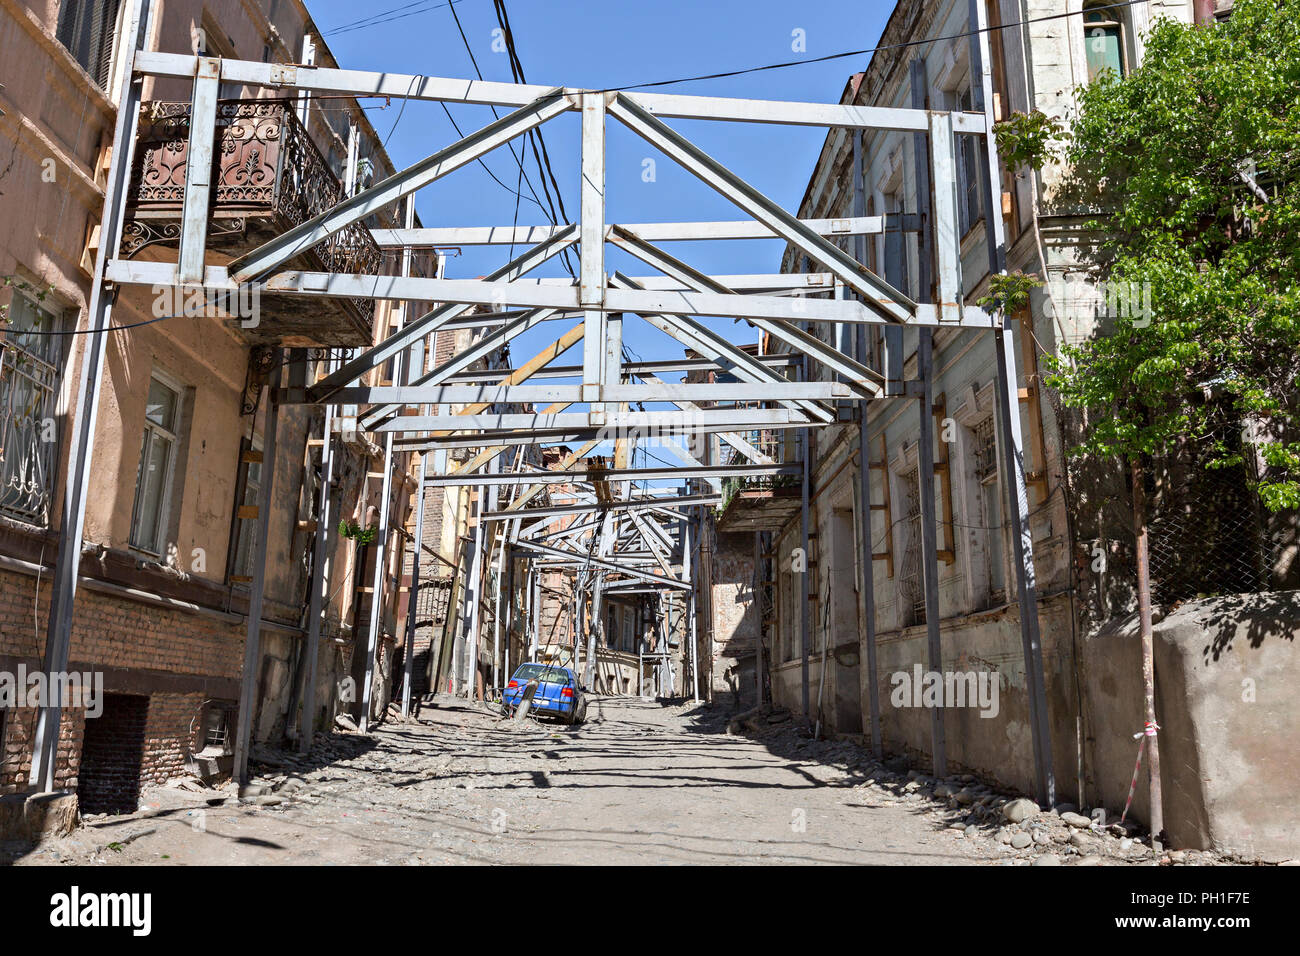 Supporting the old houses with steel bars for restoration in the old part of Tbilisi, Georgia. - Stock Image